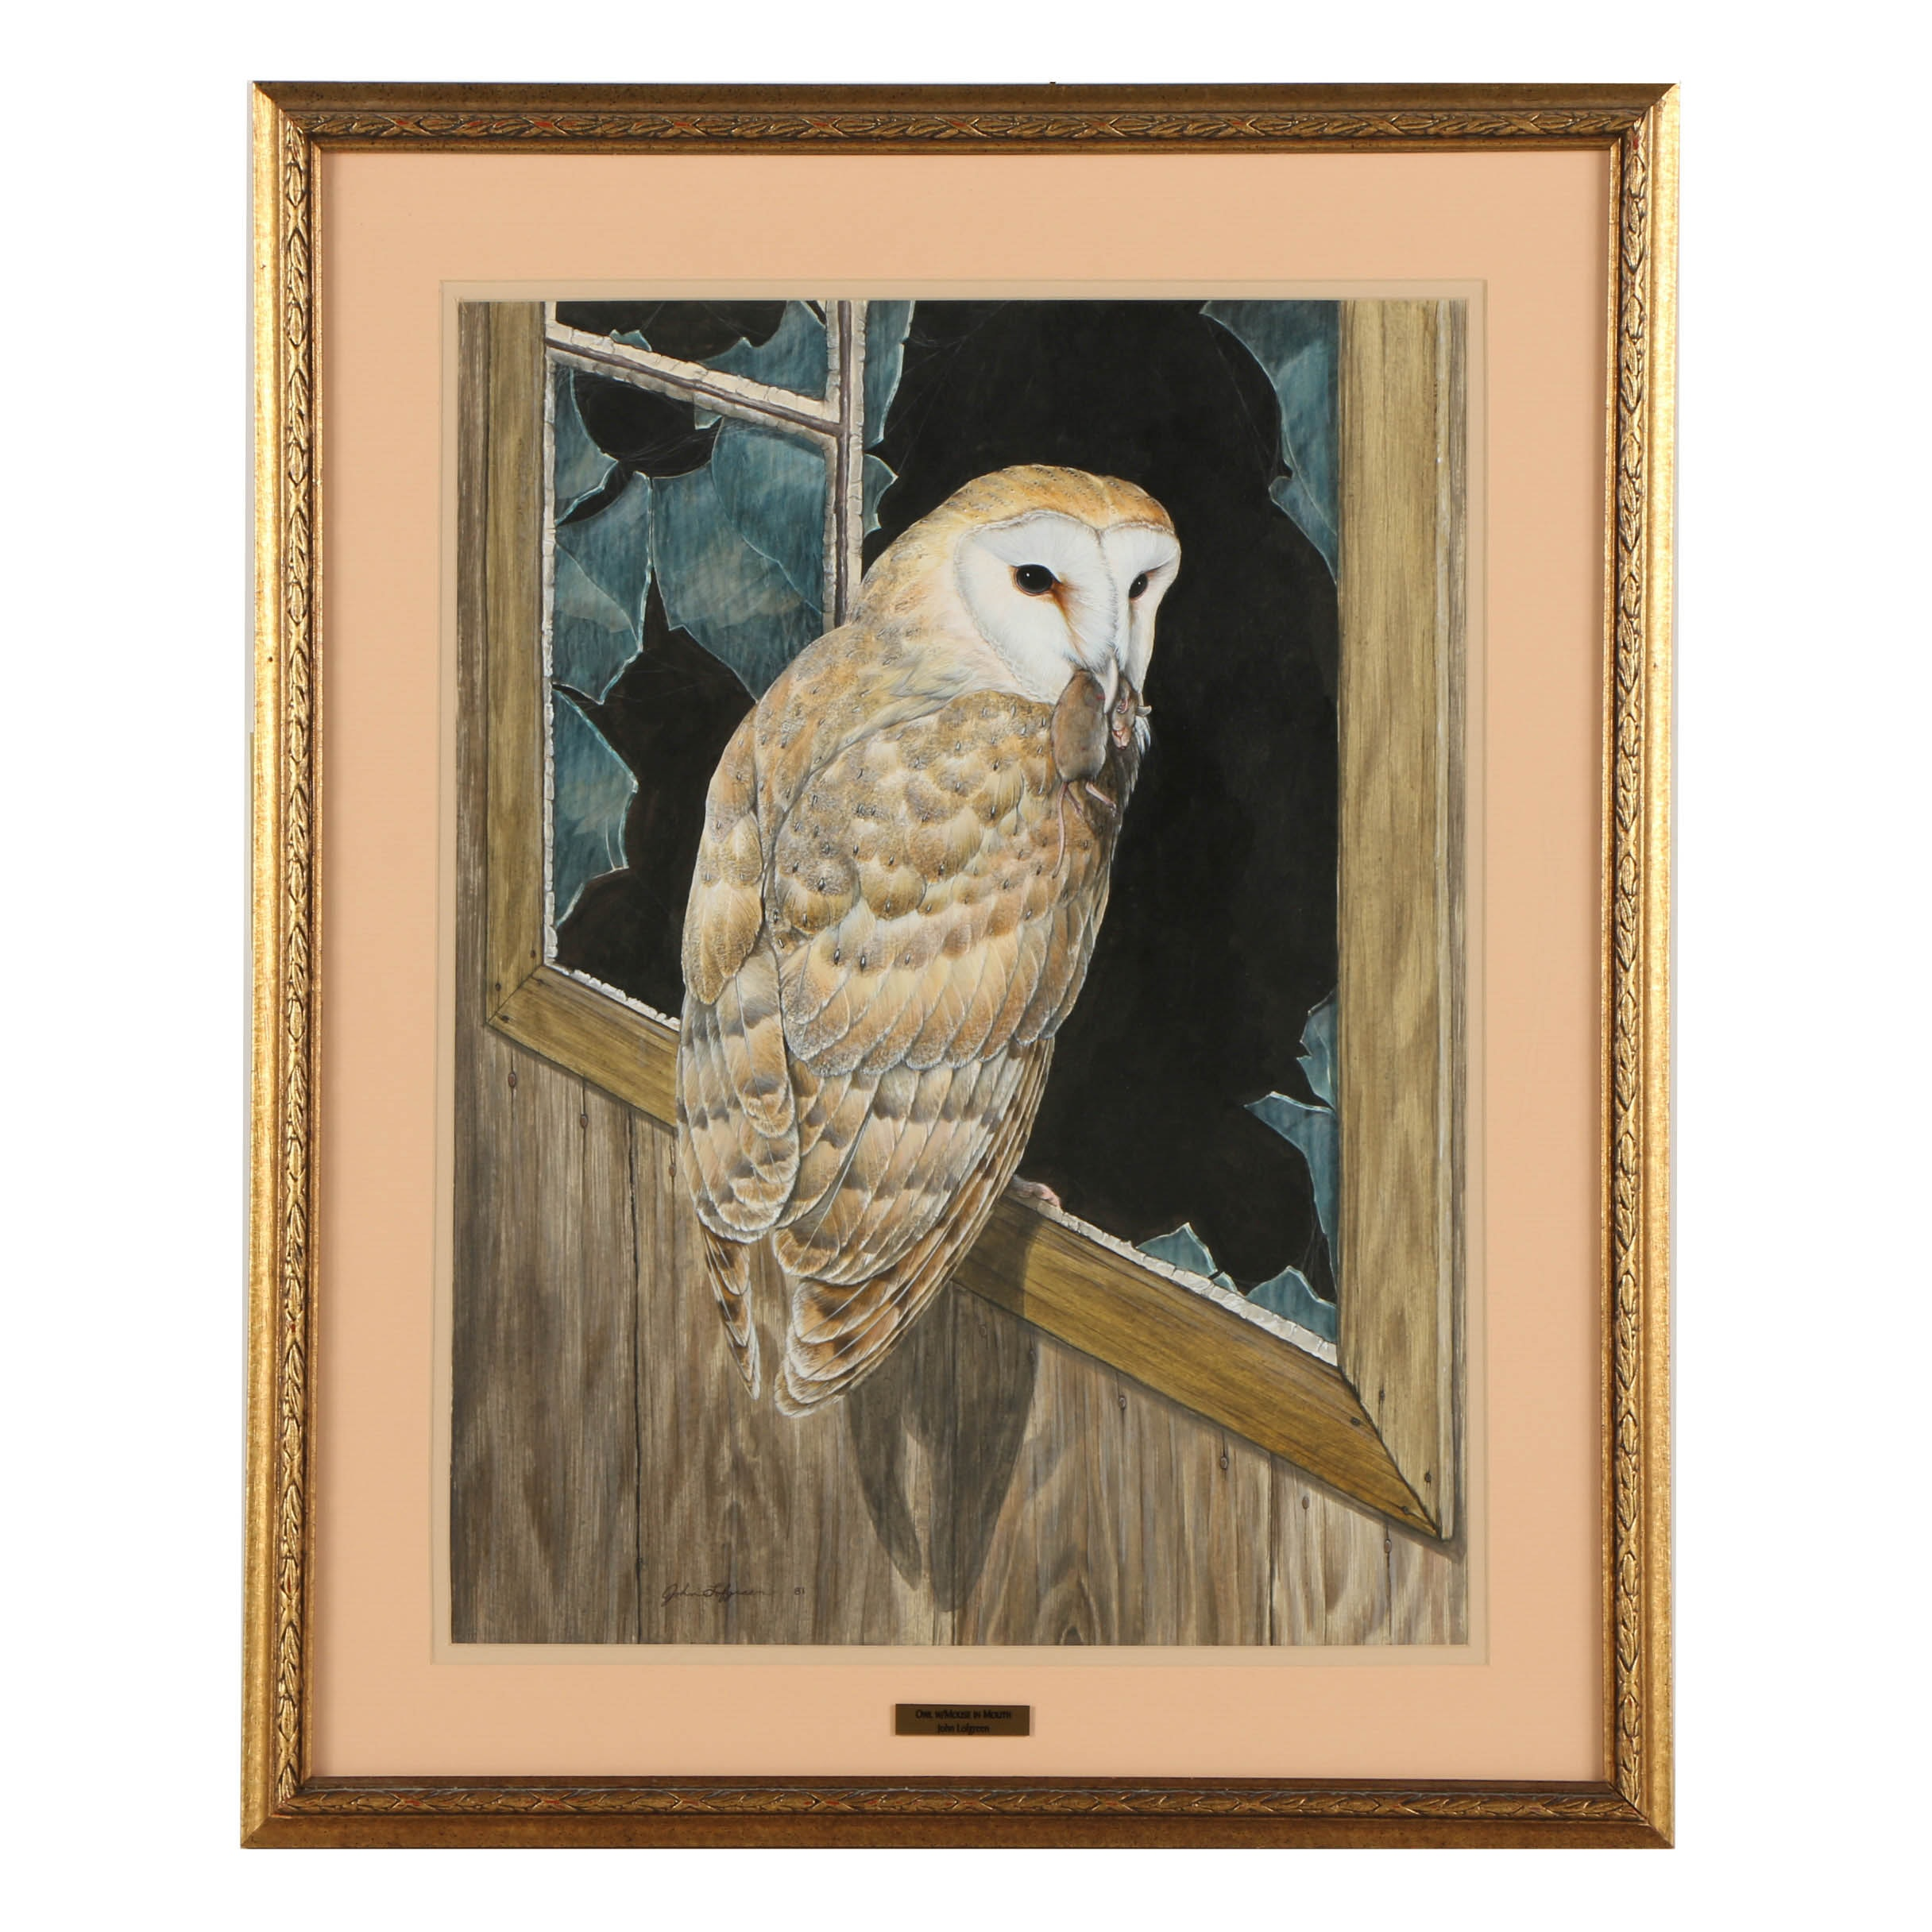 """John Lofgreen Acrylic Painting on Paper """"Owl with Mouse in Mouth"""""""